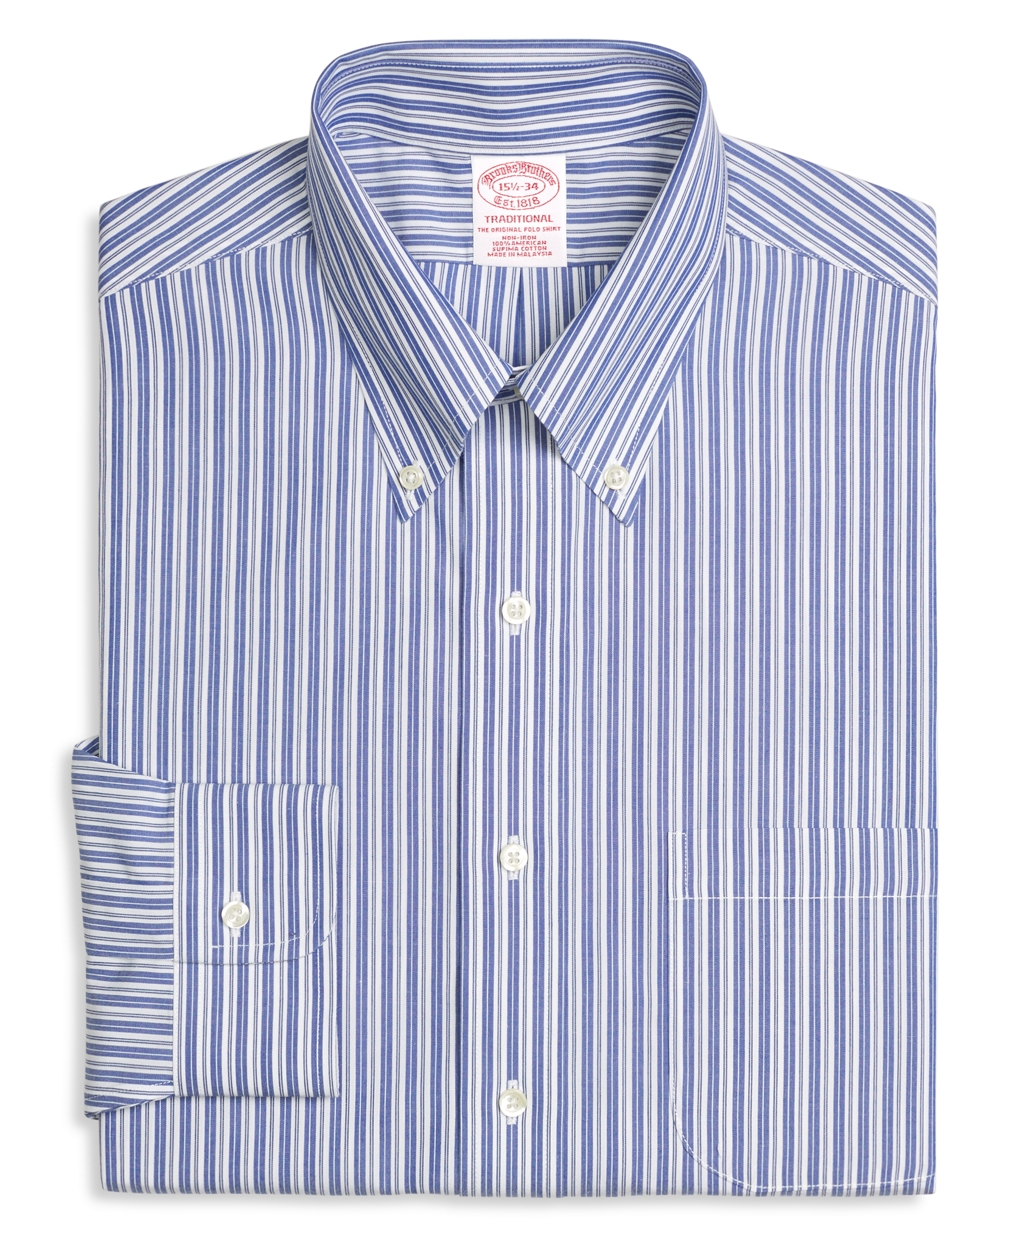 Brooks brothers non iron traditional fit bold split stripe for Brooks brothers dress shirt fit